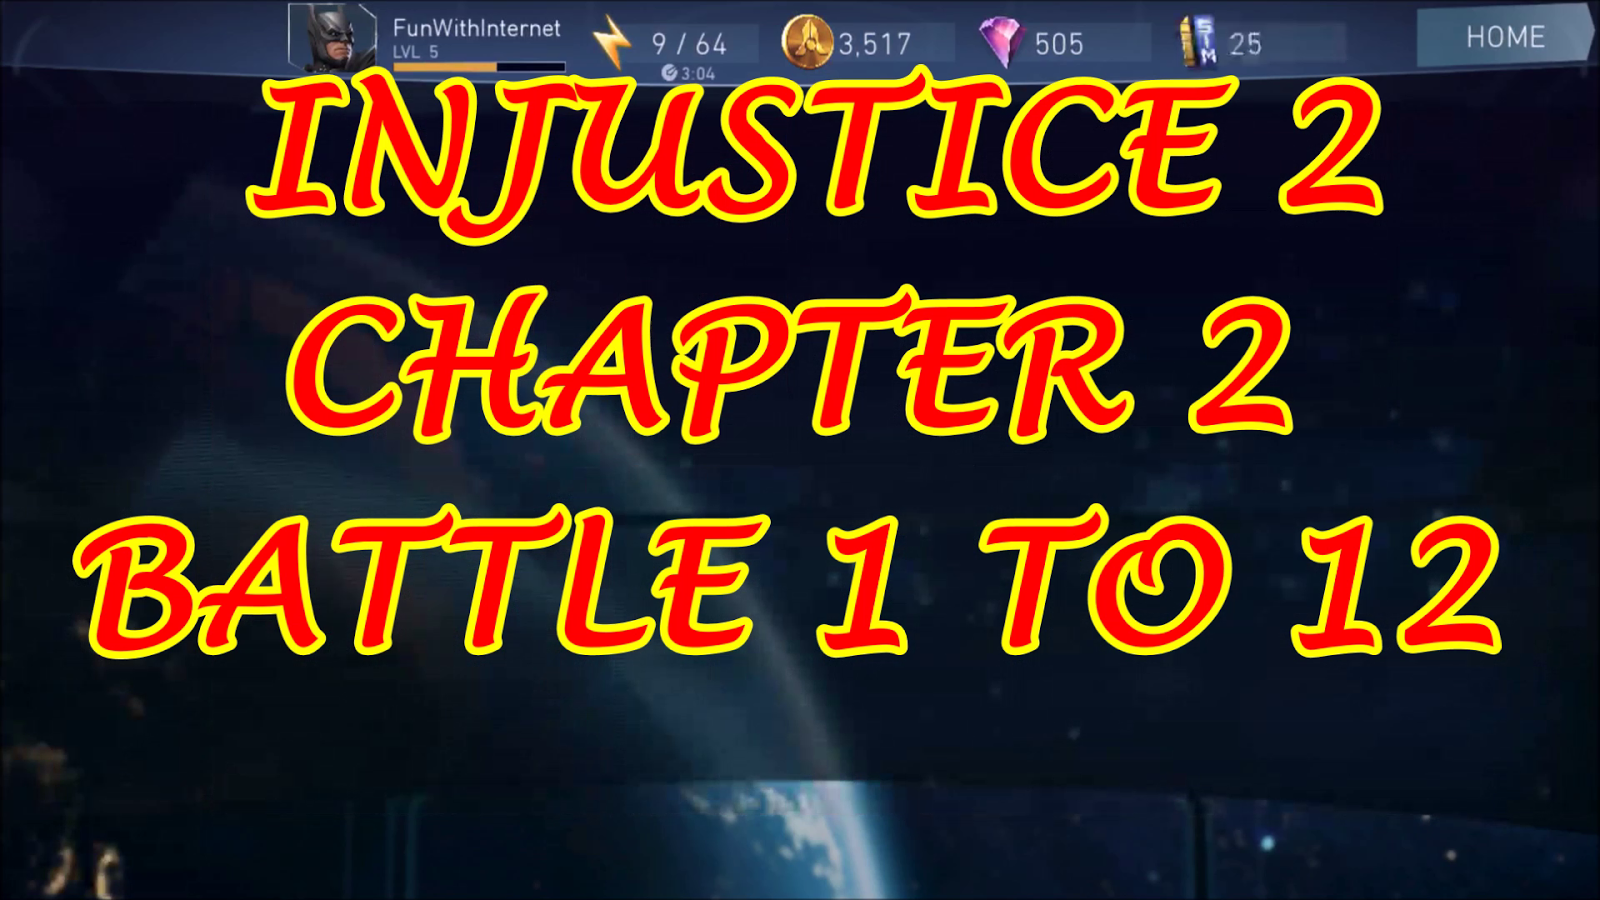 injustice 2 chapter 2 fun with internet. Black Bedroom Furniture Sets. Home Design Ideas